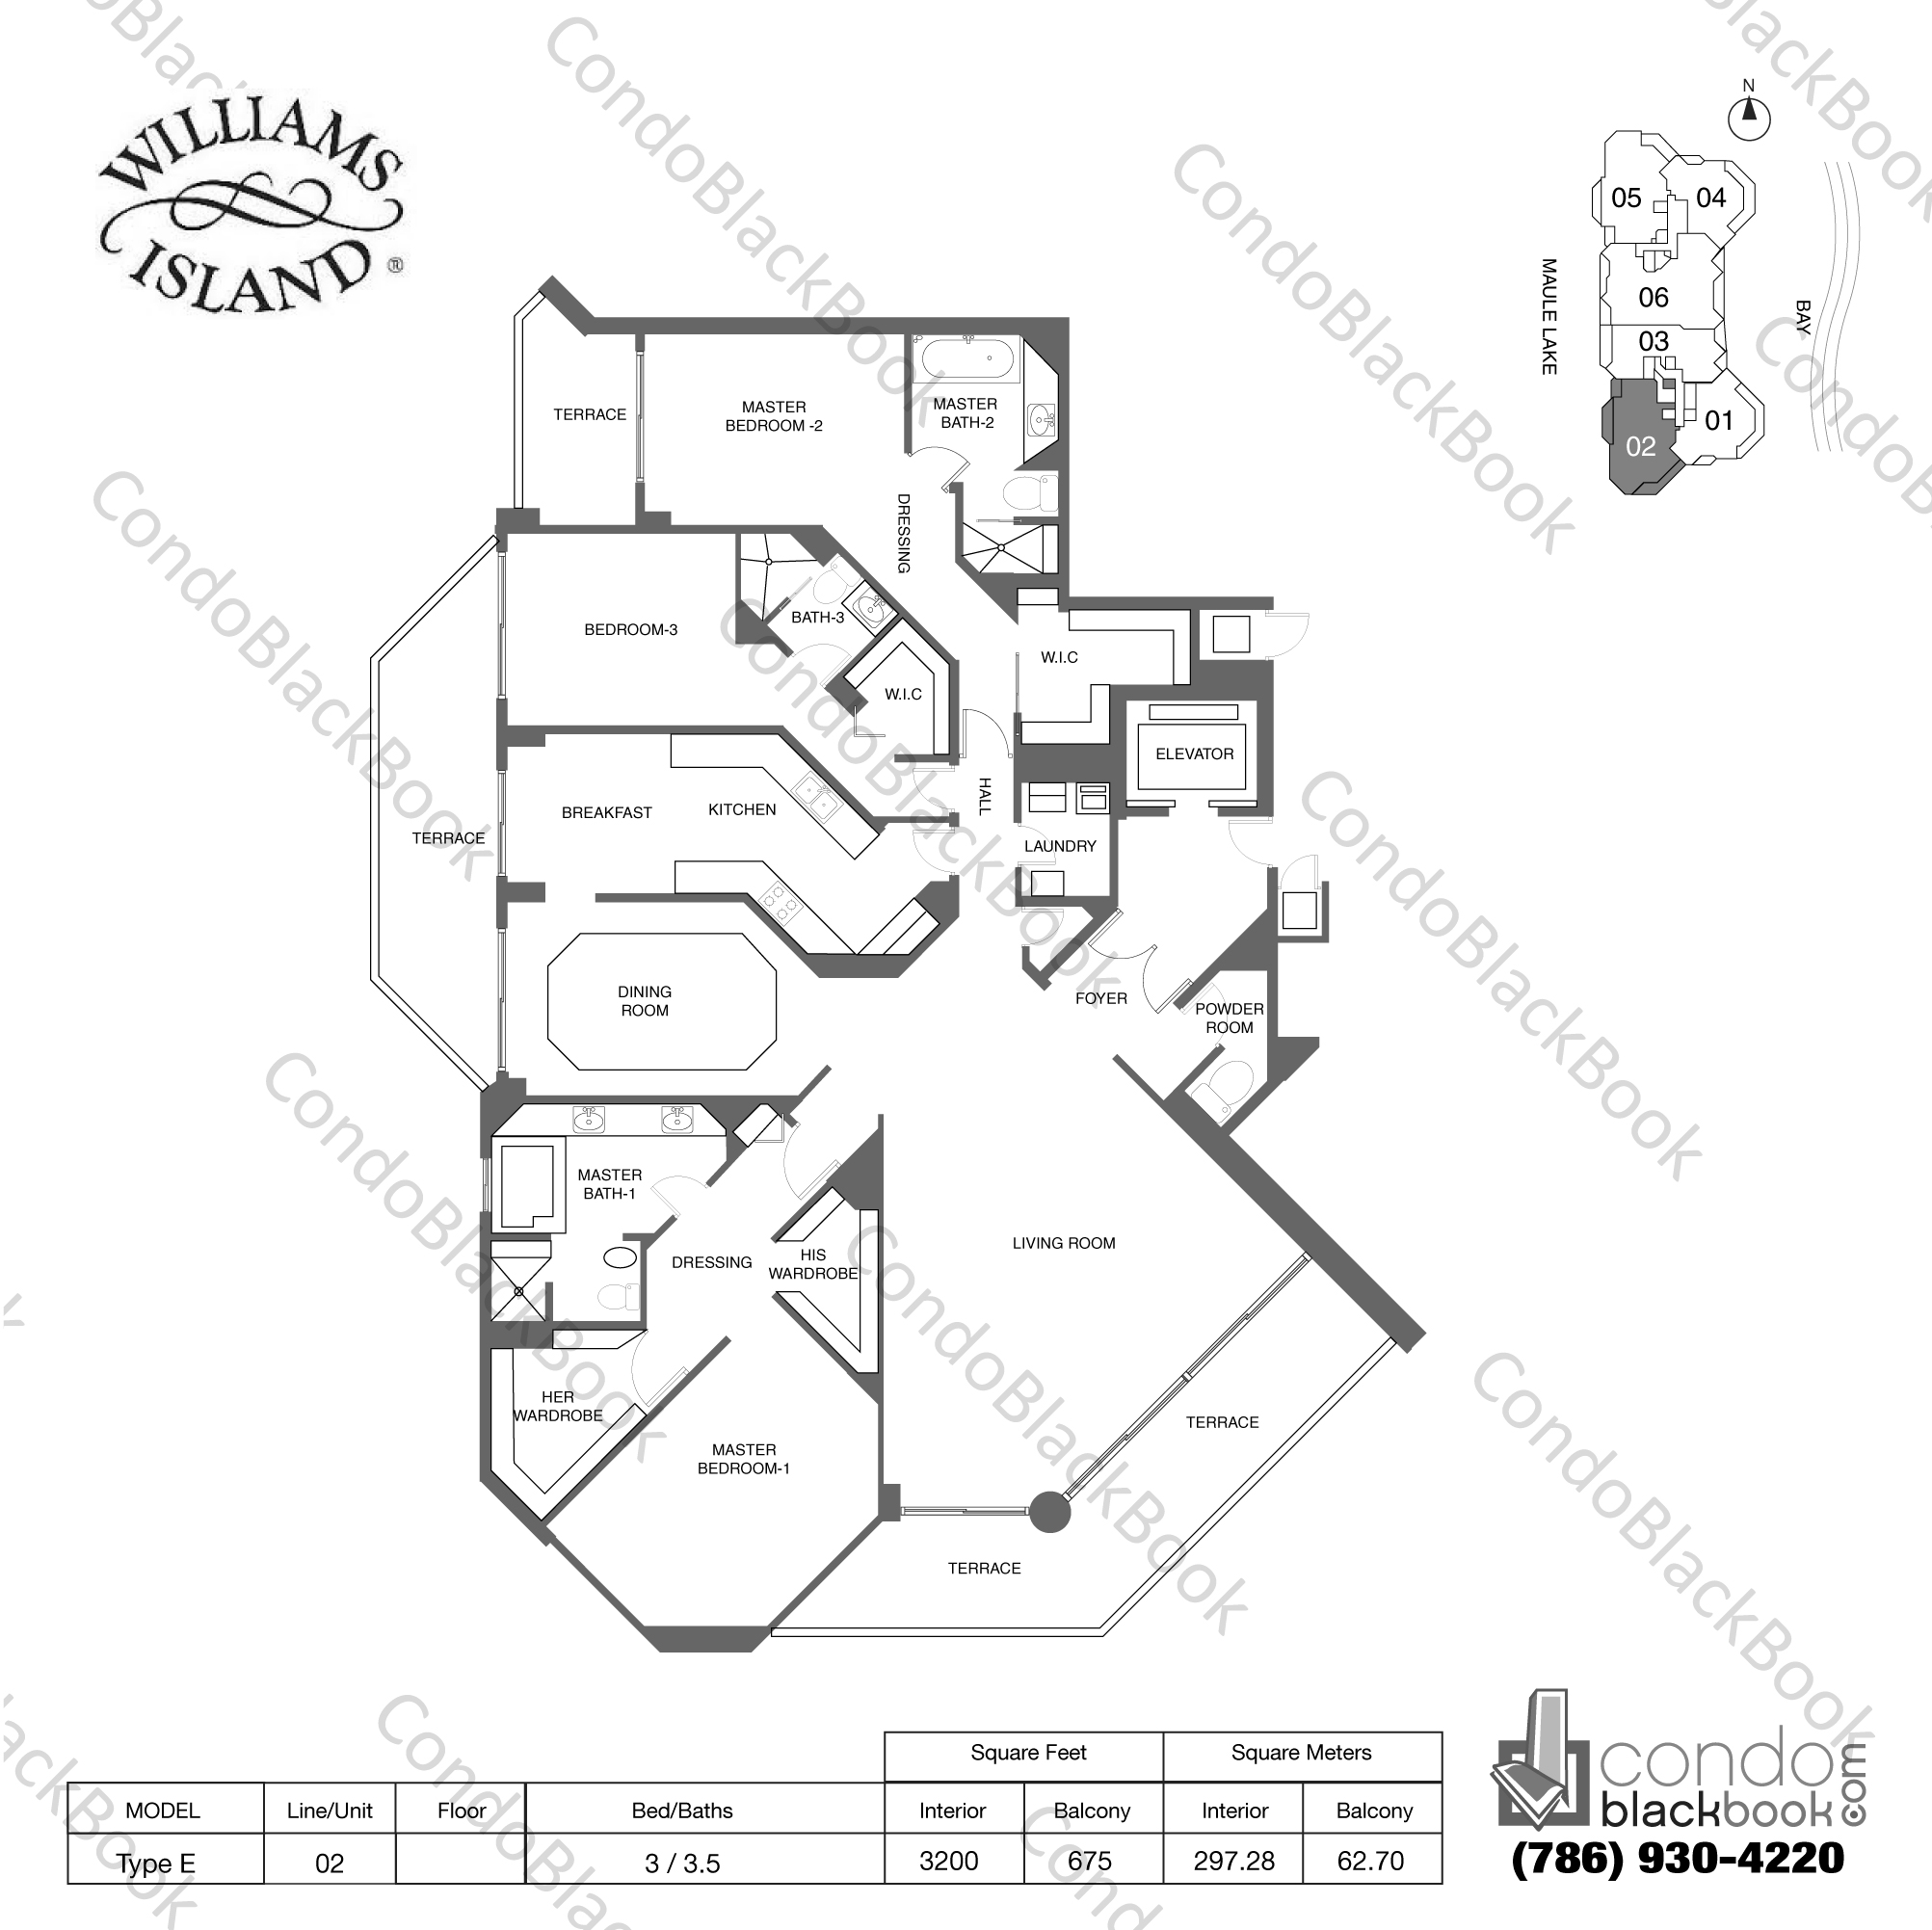 Floor plan for Williams Island 2600 Aventura, model Type E, line 02, 3 / 3.5 bedrooms, 3200 sq ft